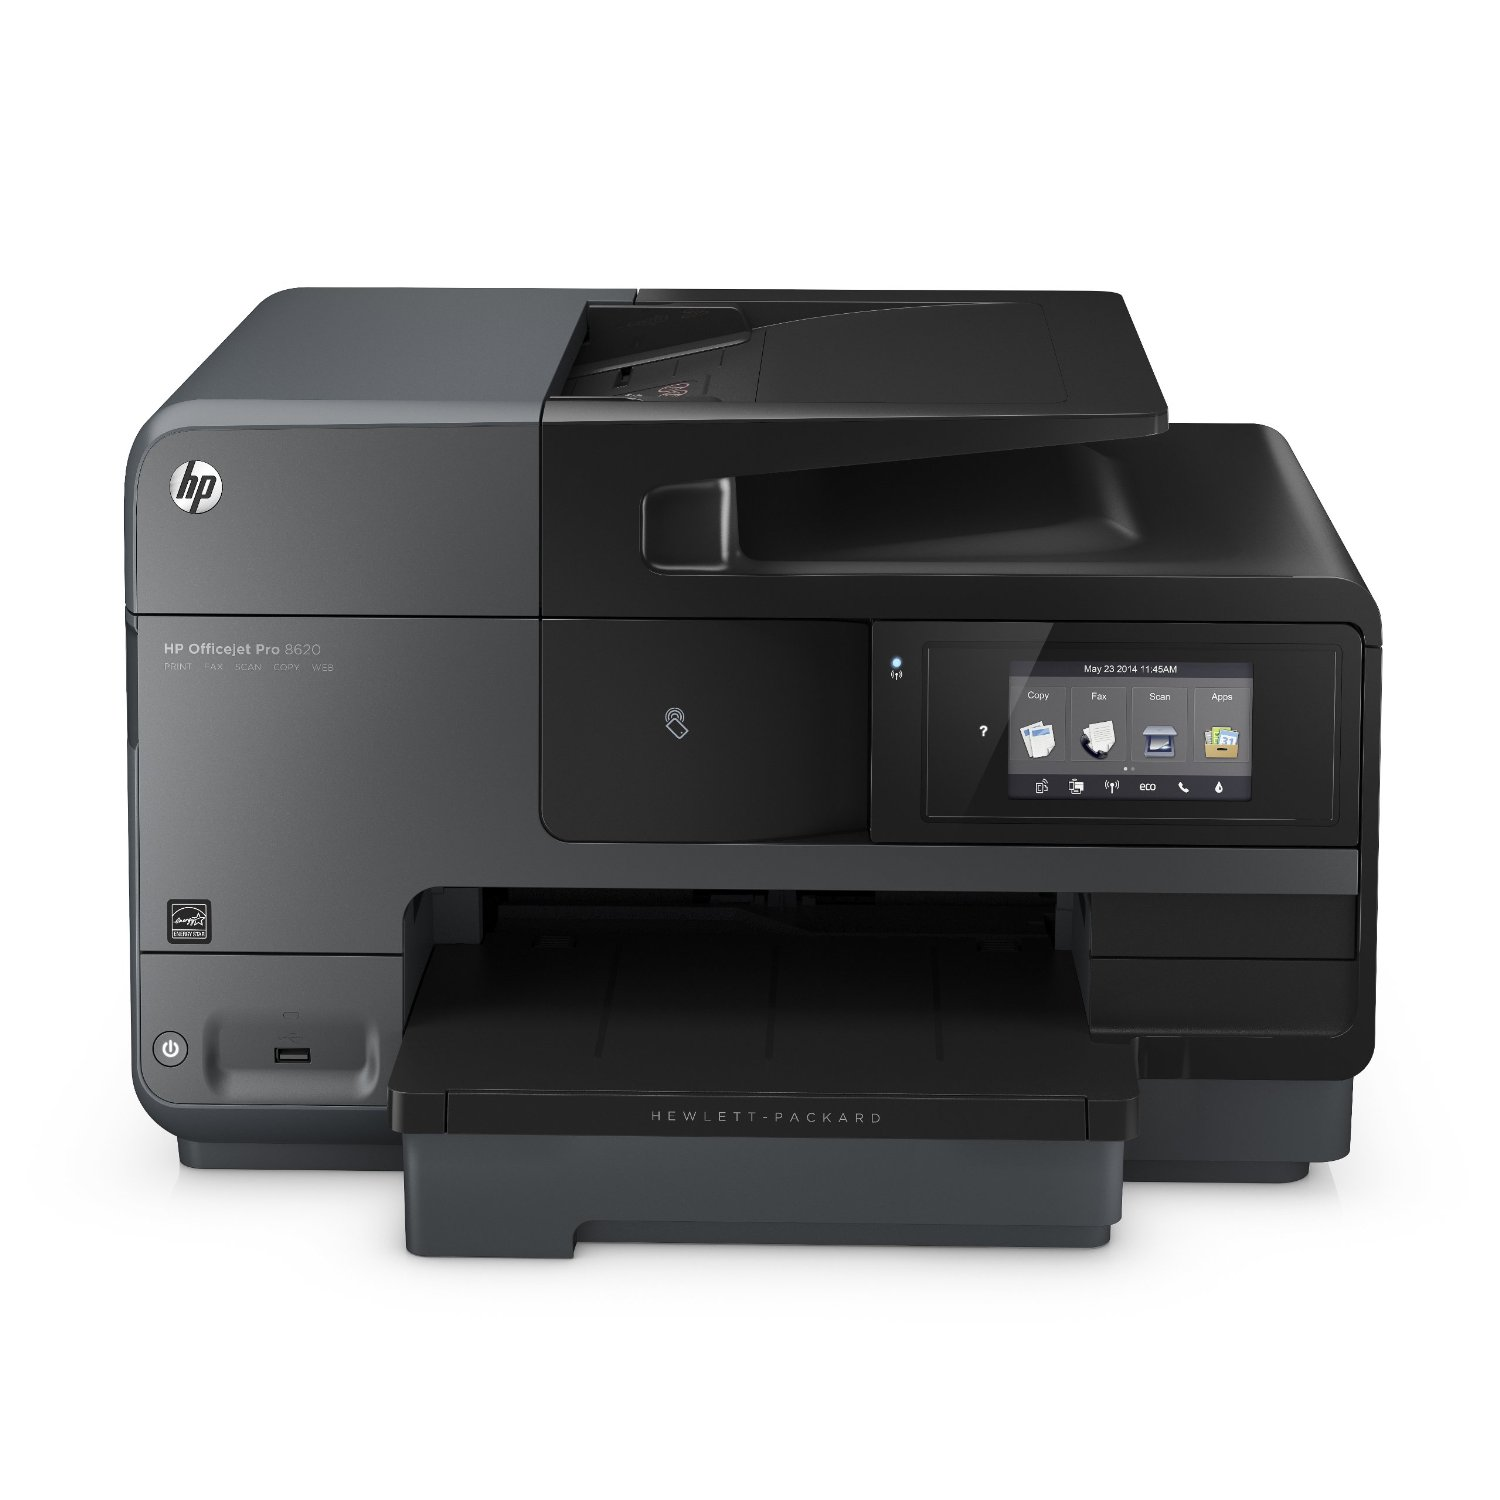 HP_OfficeJet_Pro_8620_printer